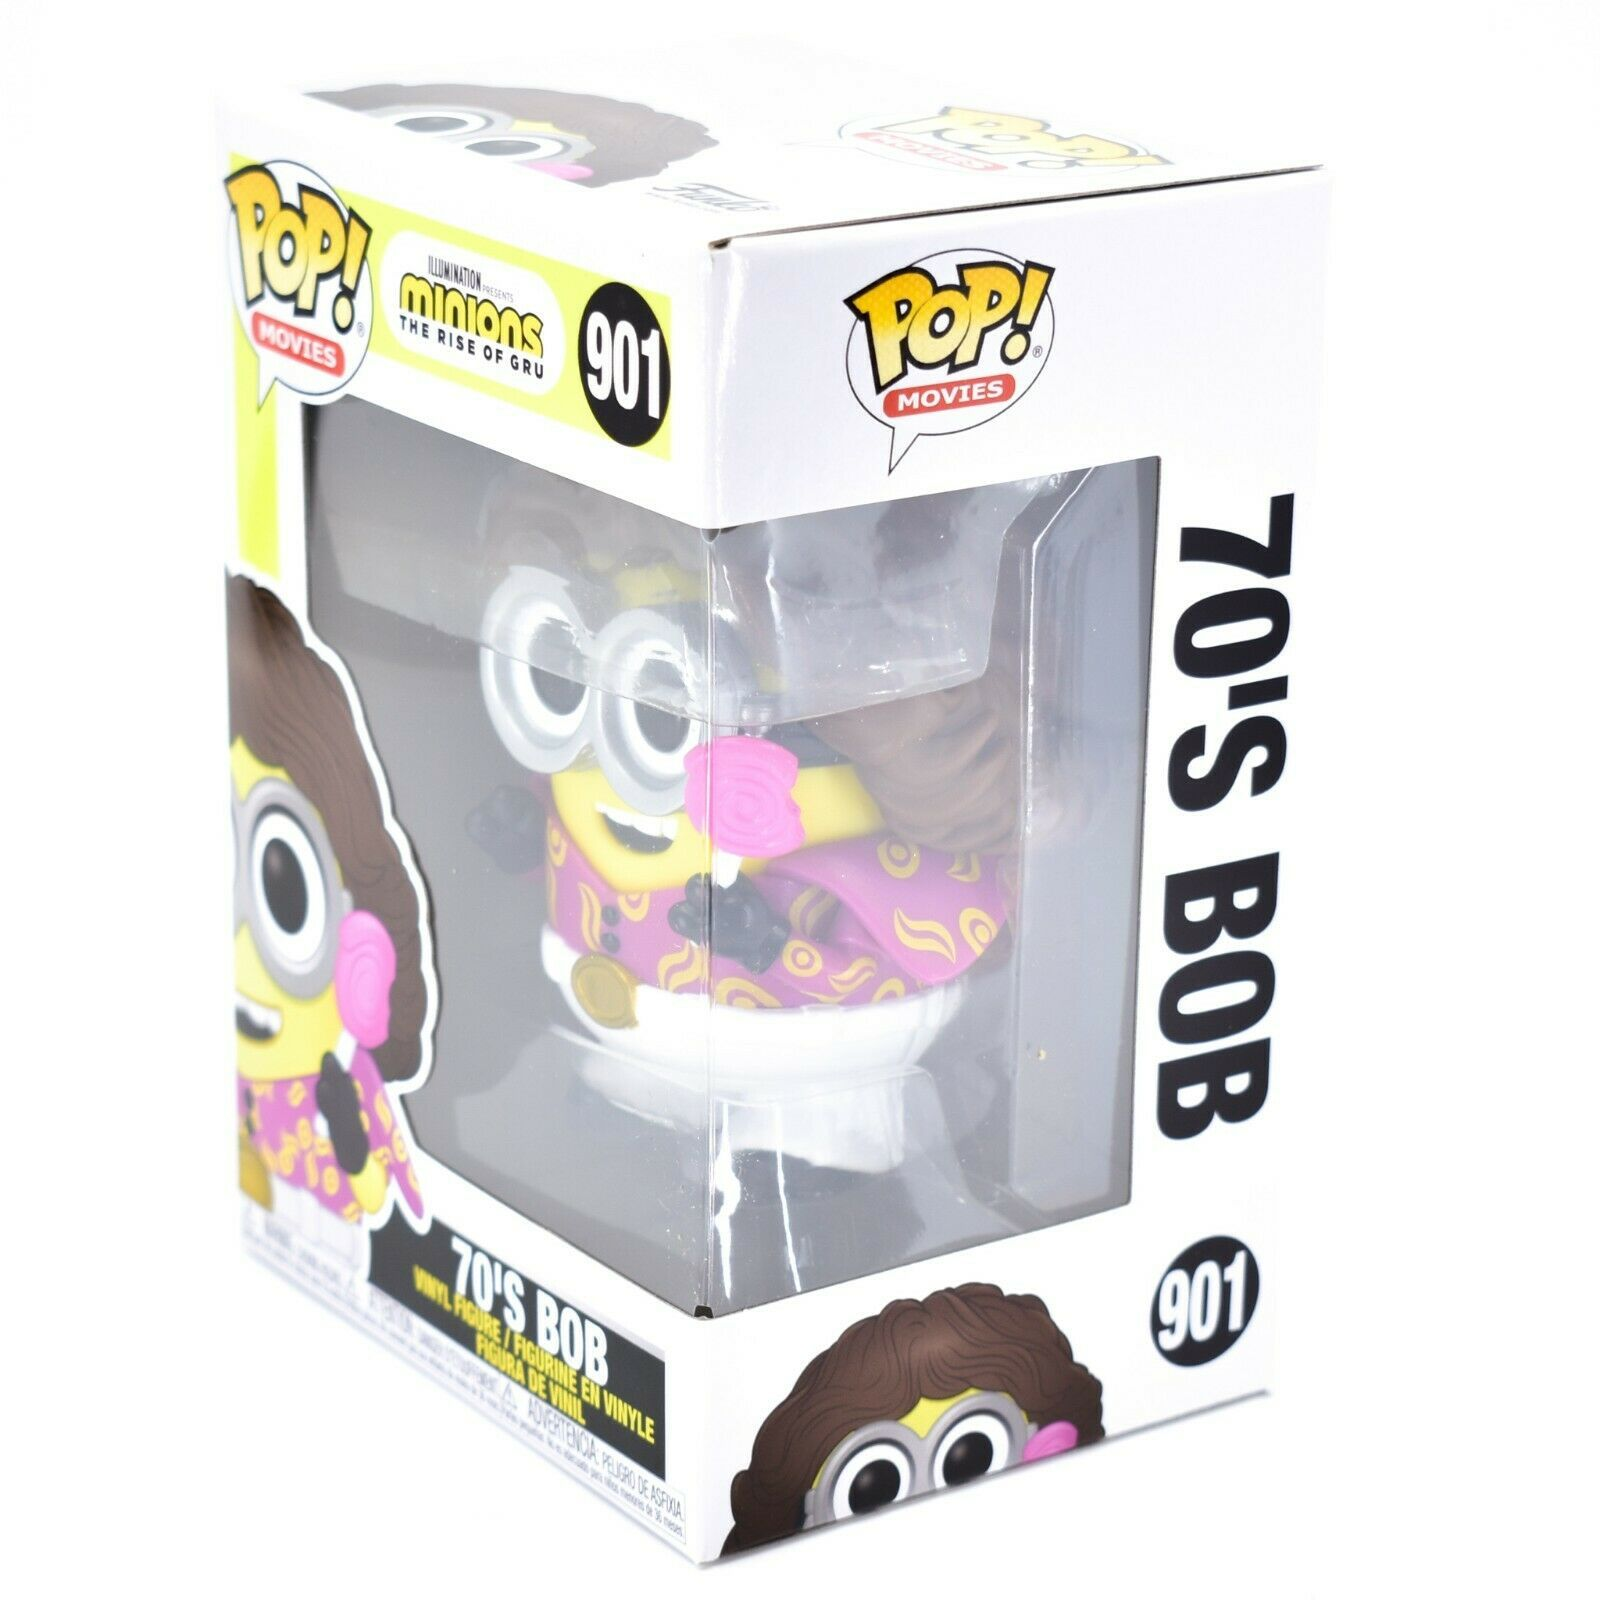 Funko Pop! Movies Minions The Rise of Gru Disco 70's Bob #901 Vinyl Figure